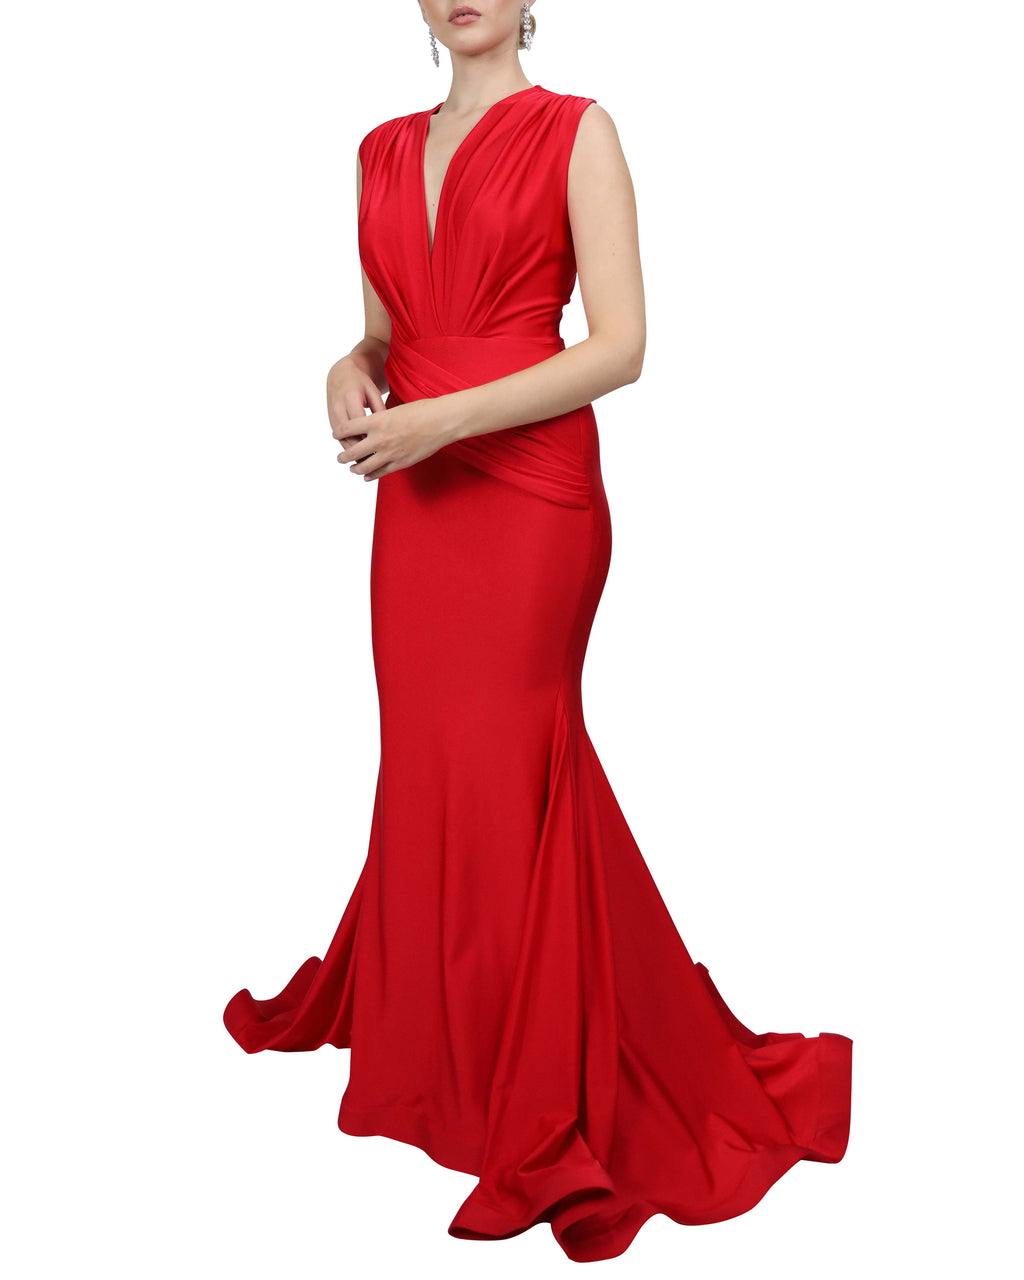 Sleeveless Jessica Gown - Red